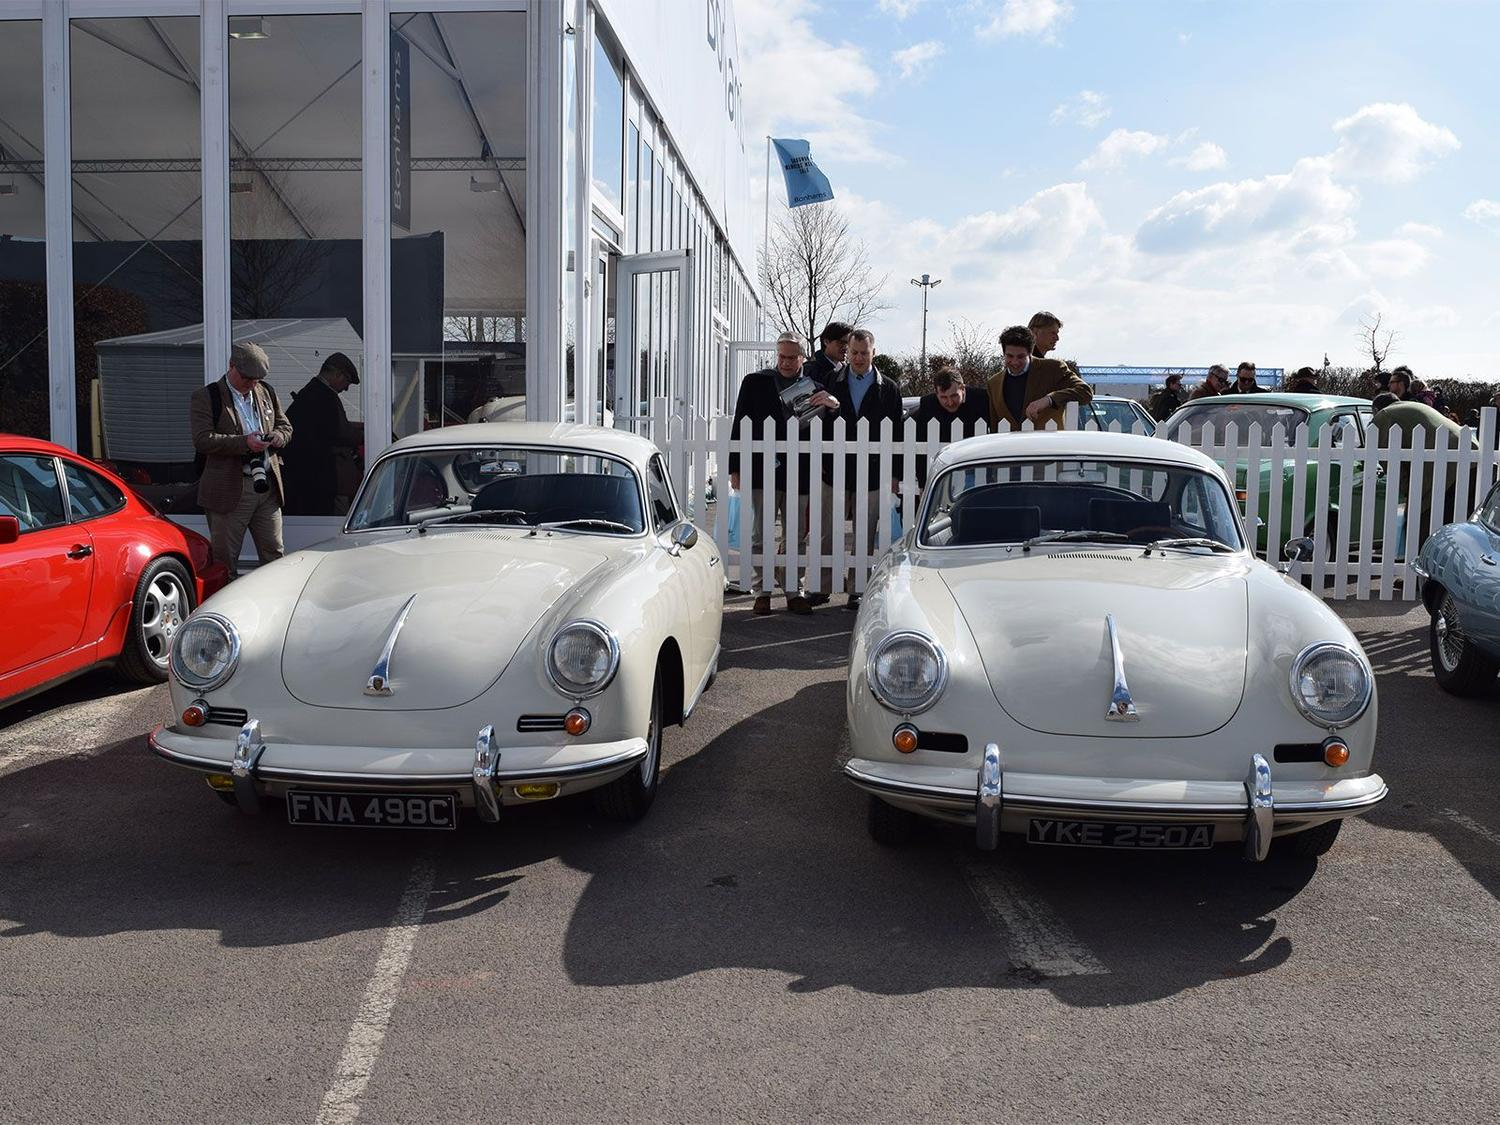 A beautiful pair of Porsche 356 coupés at the 73rd Goodwood Members' Meeting in 2015